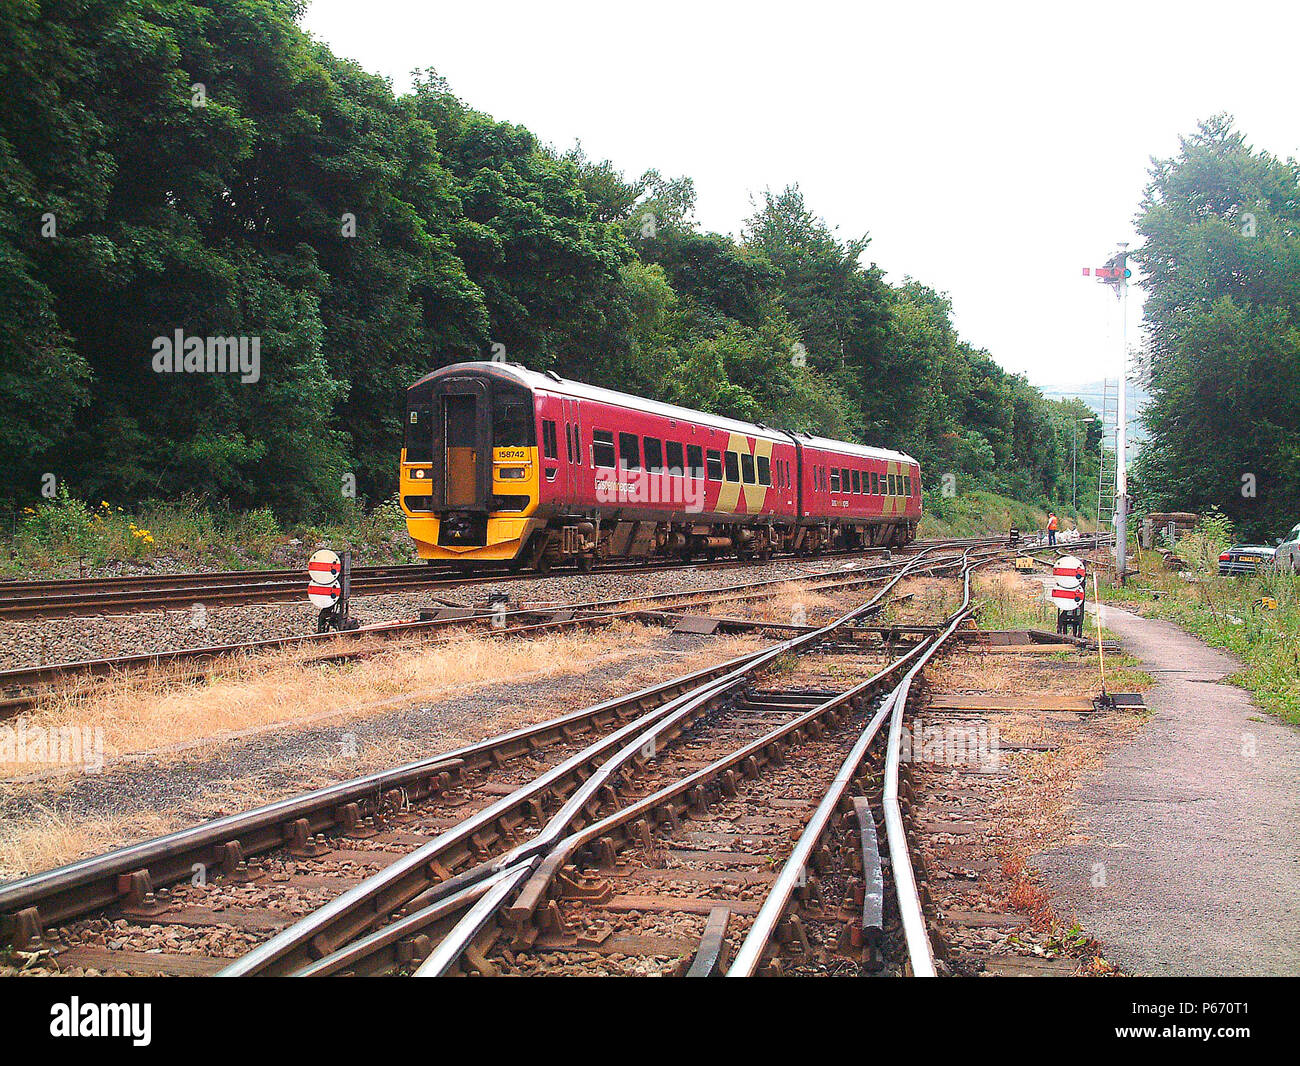 The southern Transpennine services use the Hope Valley to provide a connection between Sheffield and Manchester using Class 158 DMUs, one of which is  - Stock Image